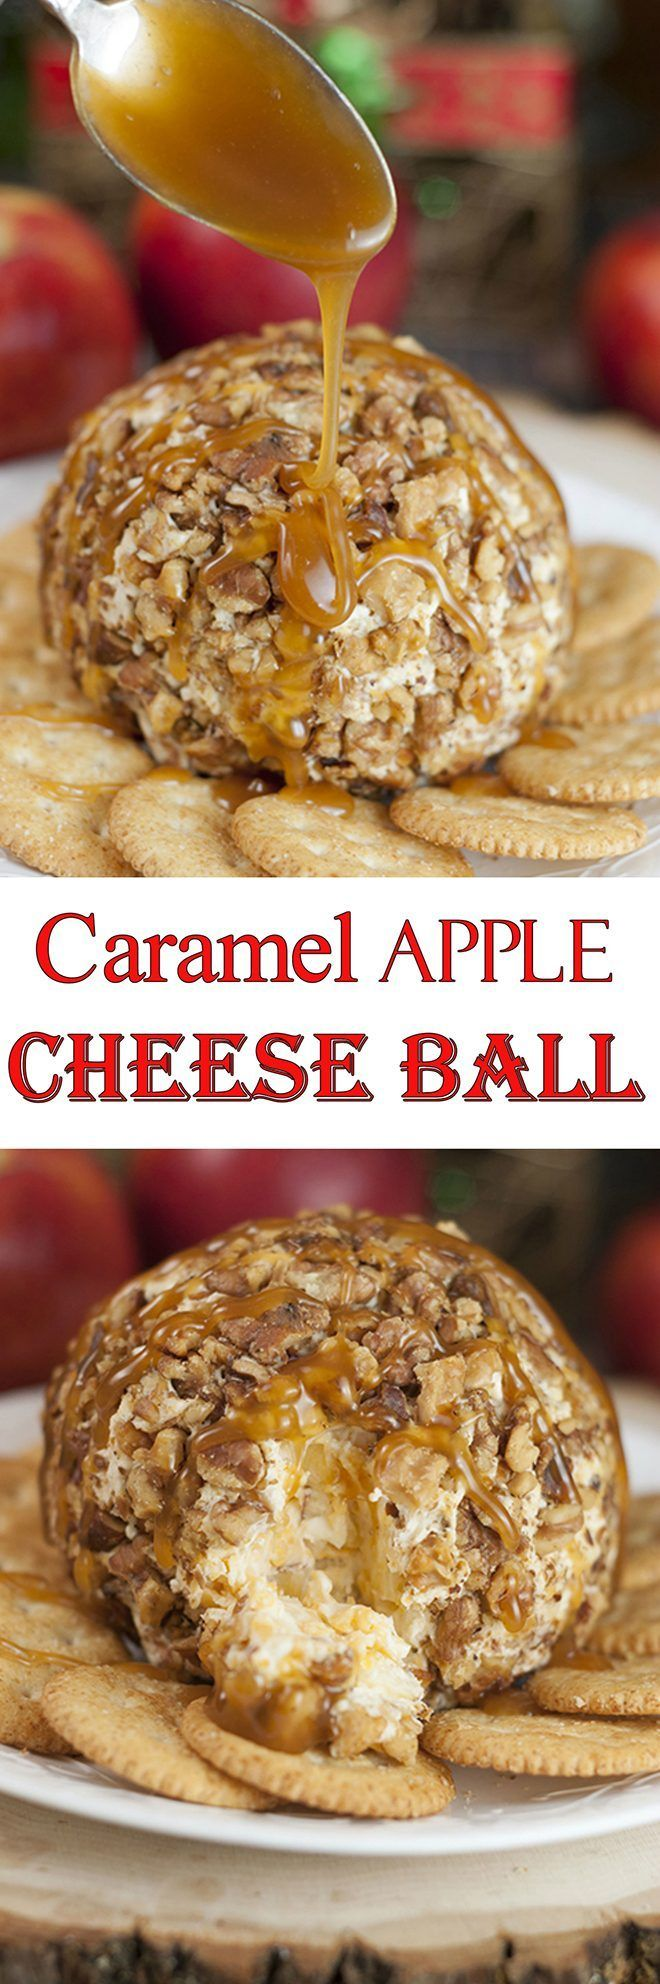 Caramel Apple Cheese Ball Ashley @ Wishes & Dishes